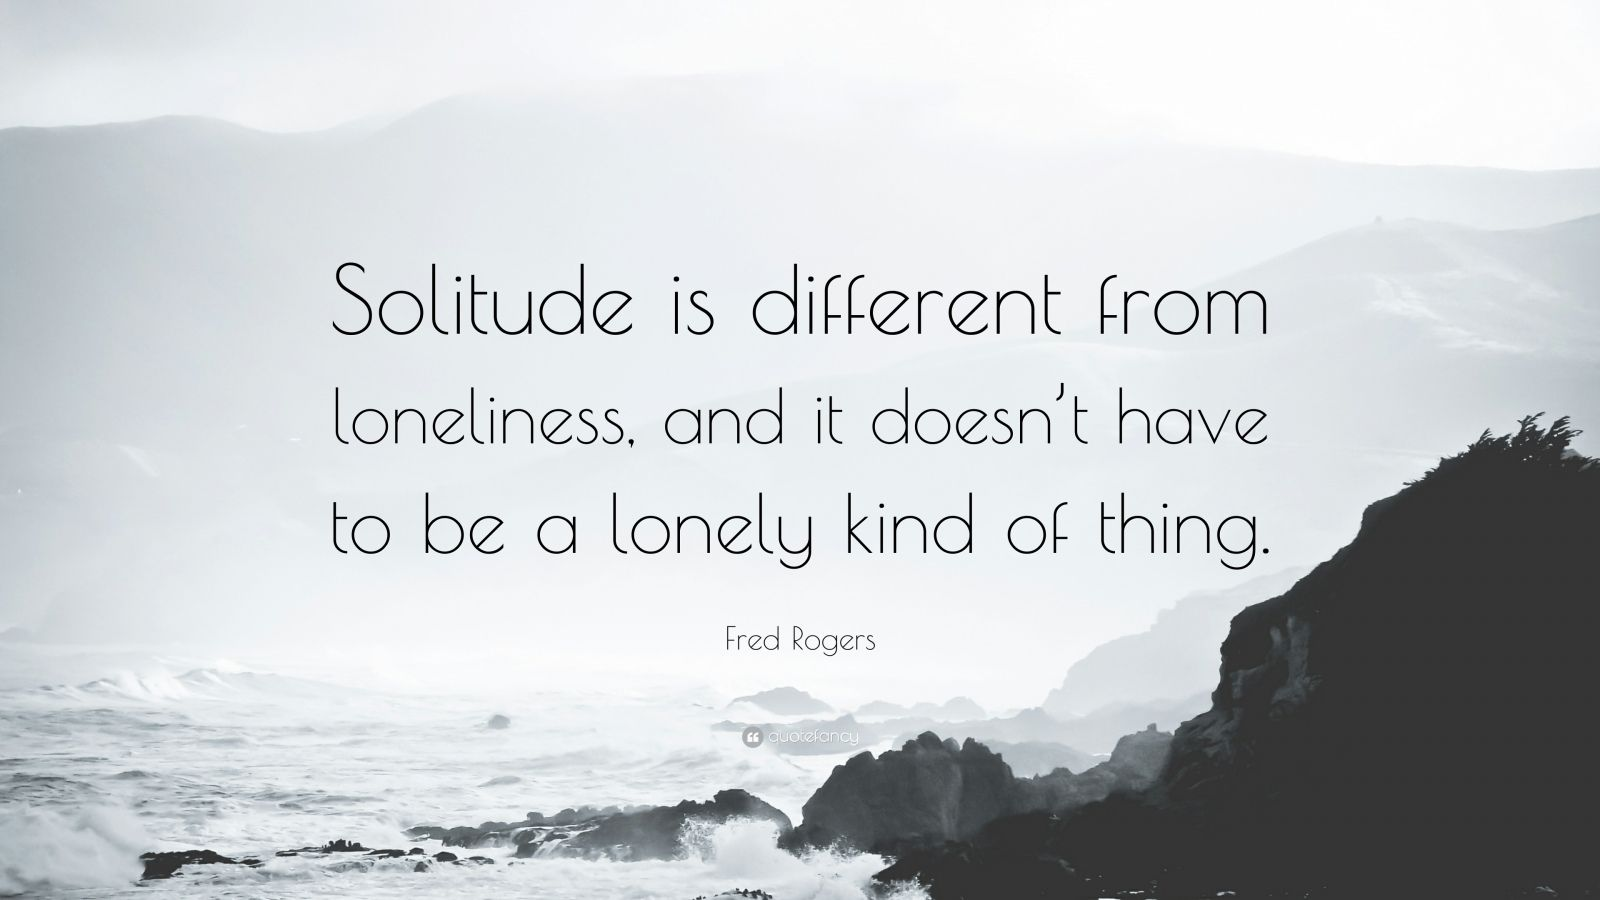 """Fred Rogers Quote: """"Solitude is different from loneliness, and it doesn't have to be a lonely kind of thing."""""""